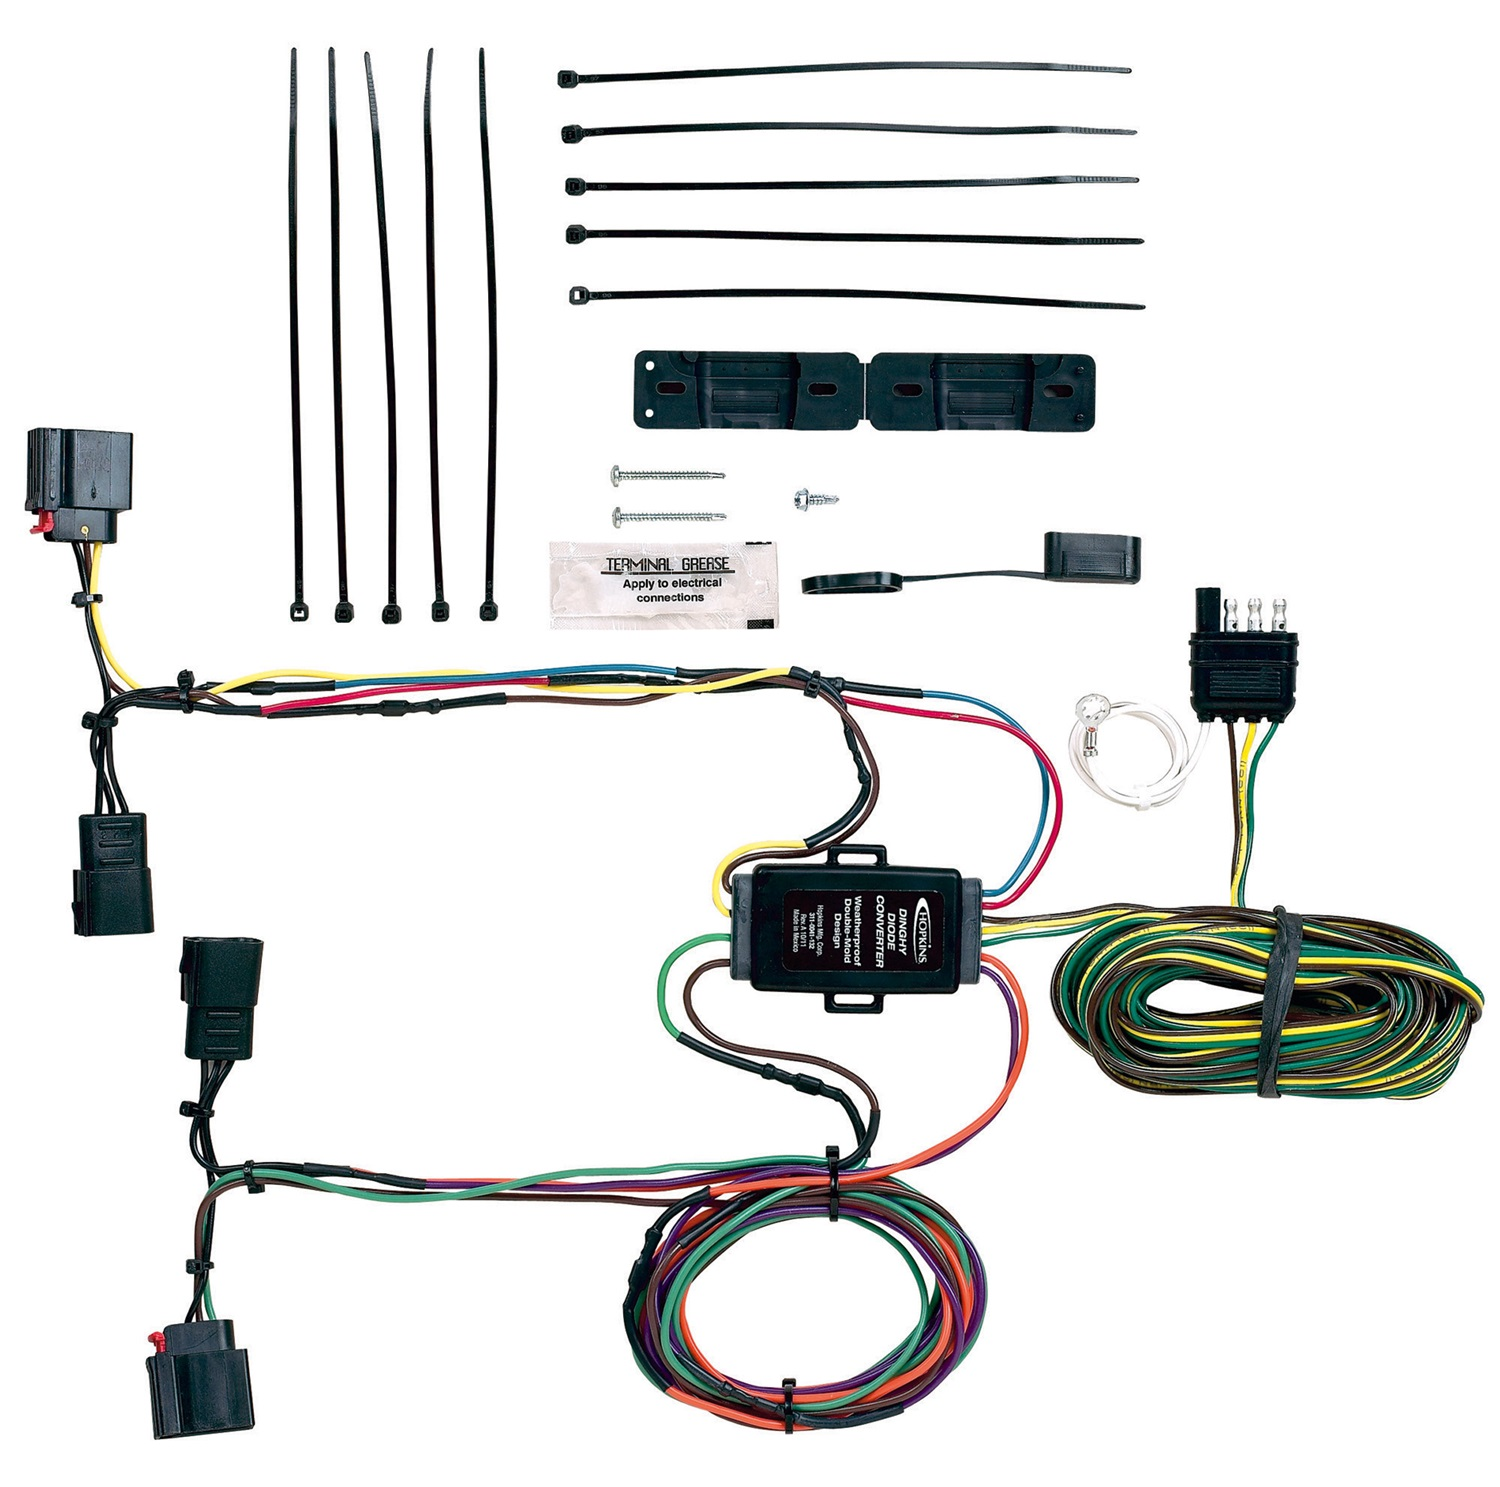 Hopkins Towing Solution 56207 Plug-In Simple Towed Vehicle Wiring Kit